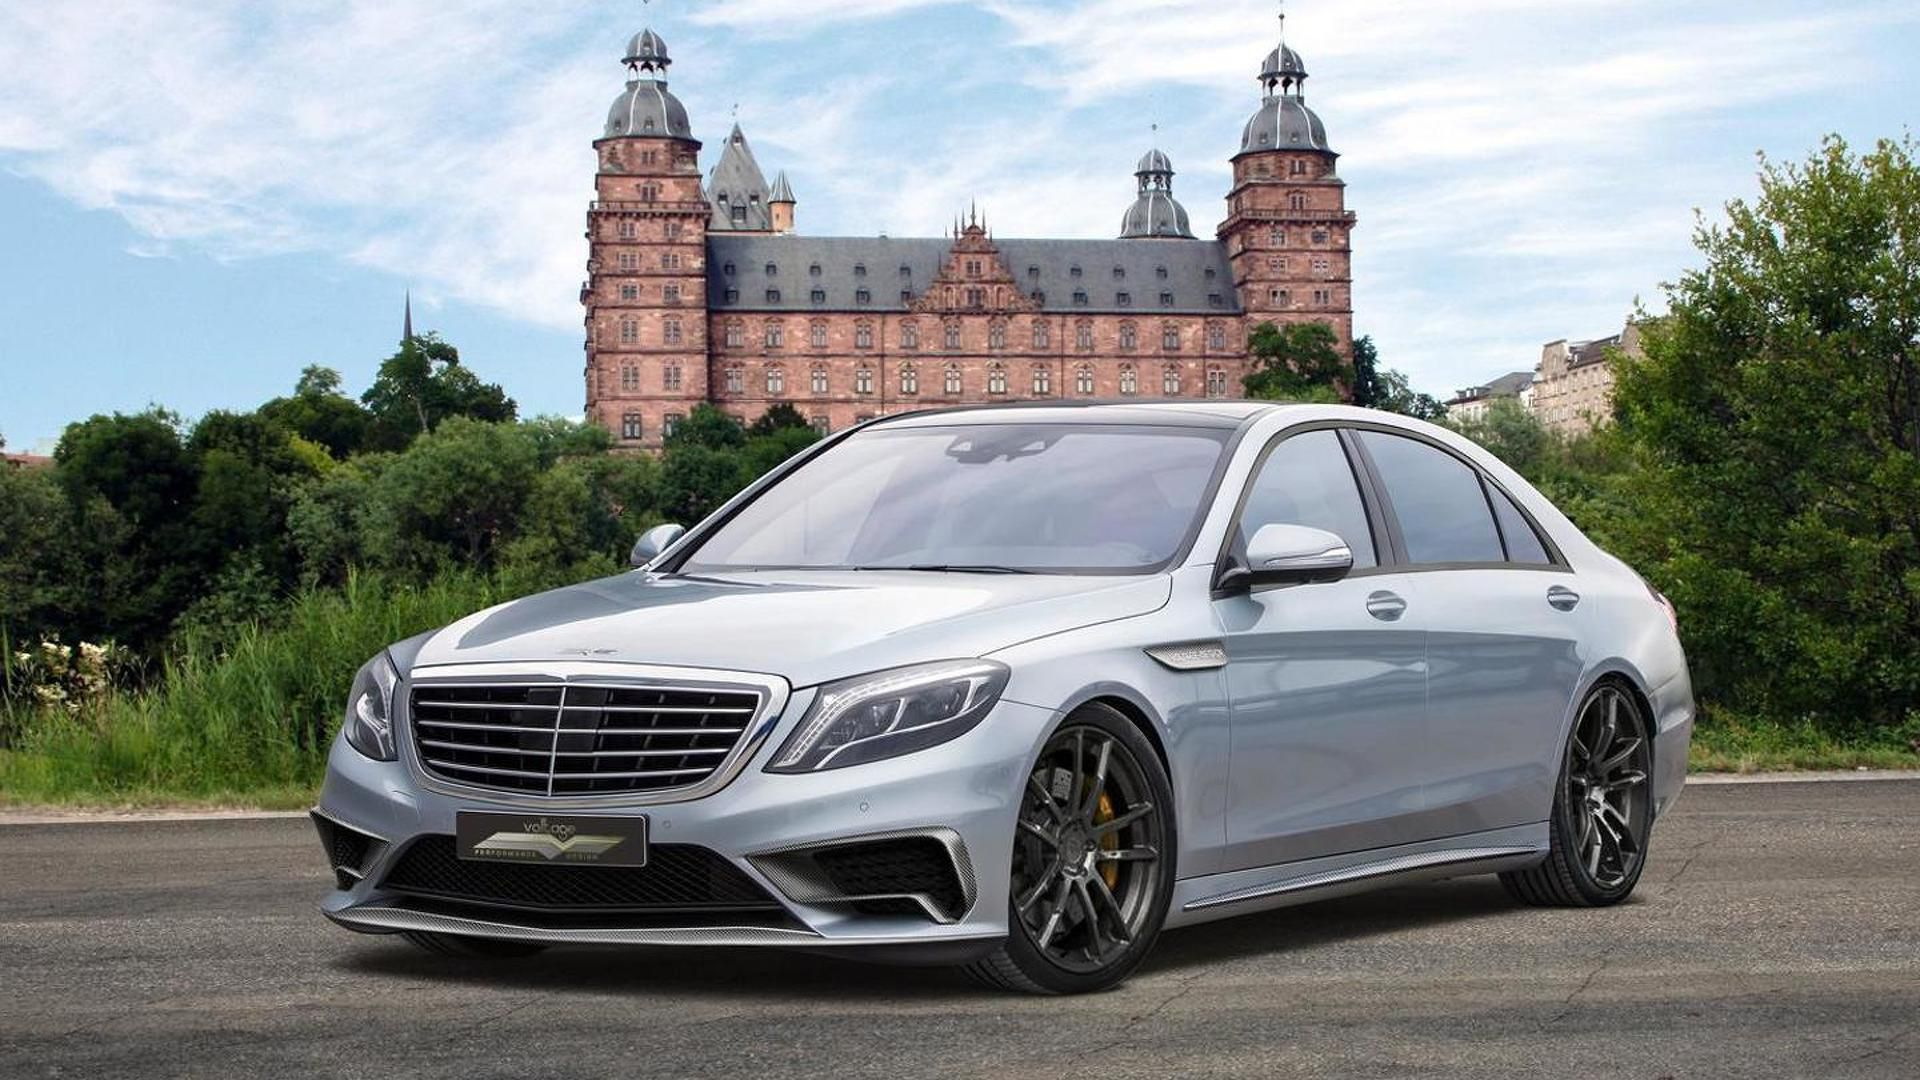 mercedes benz s65 amg wallpapers images photos pictures backgrounds. Black Bedroom Furniture Sets. Home Design Ideas